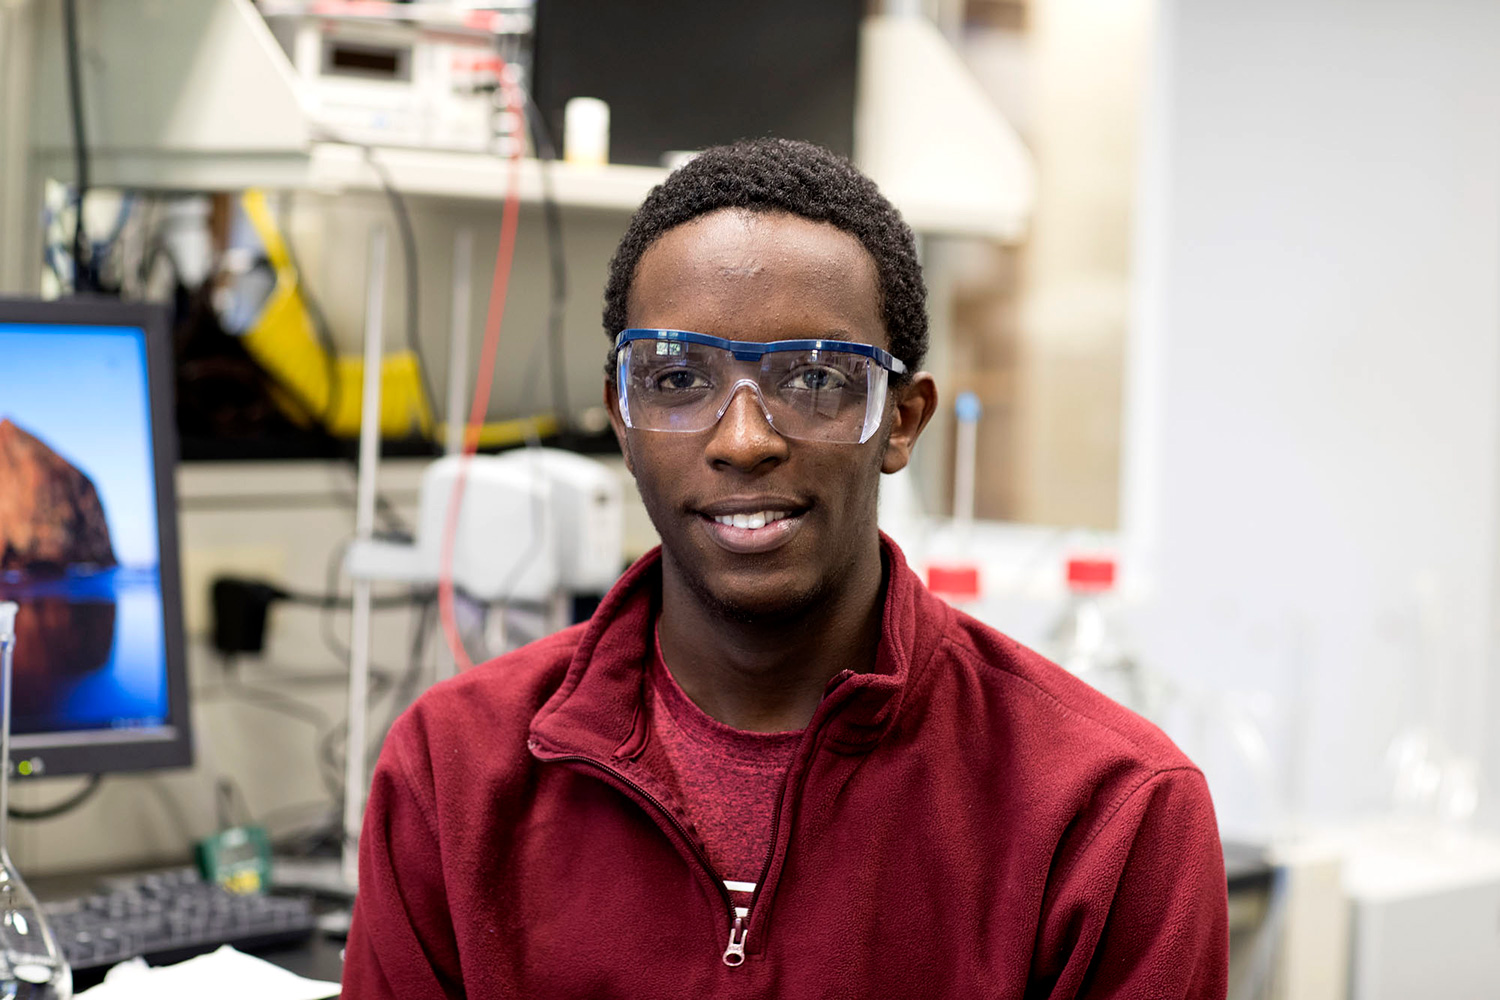 First-year student Kevin Bahati is a member of the National Society of Black Engineers and plans to major in chemical engineering. (Photos by Dan Addison, University Communications)